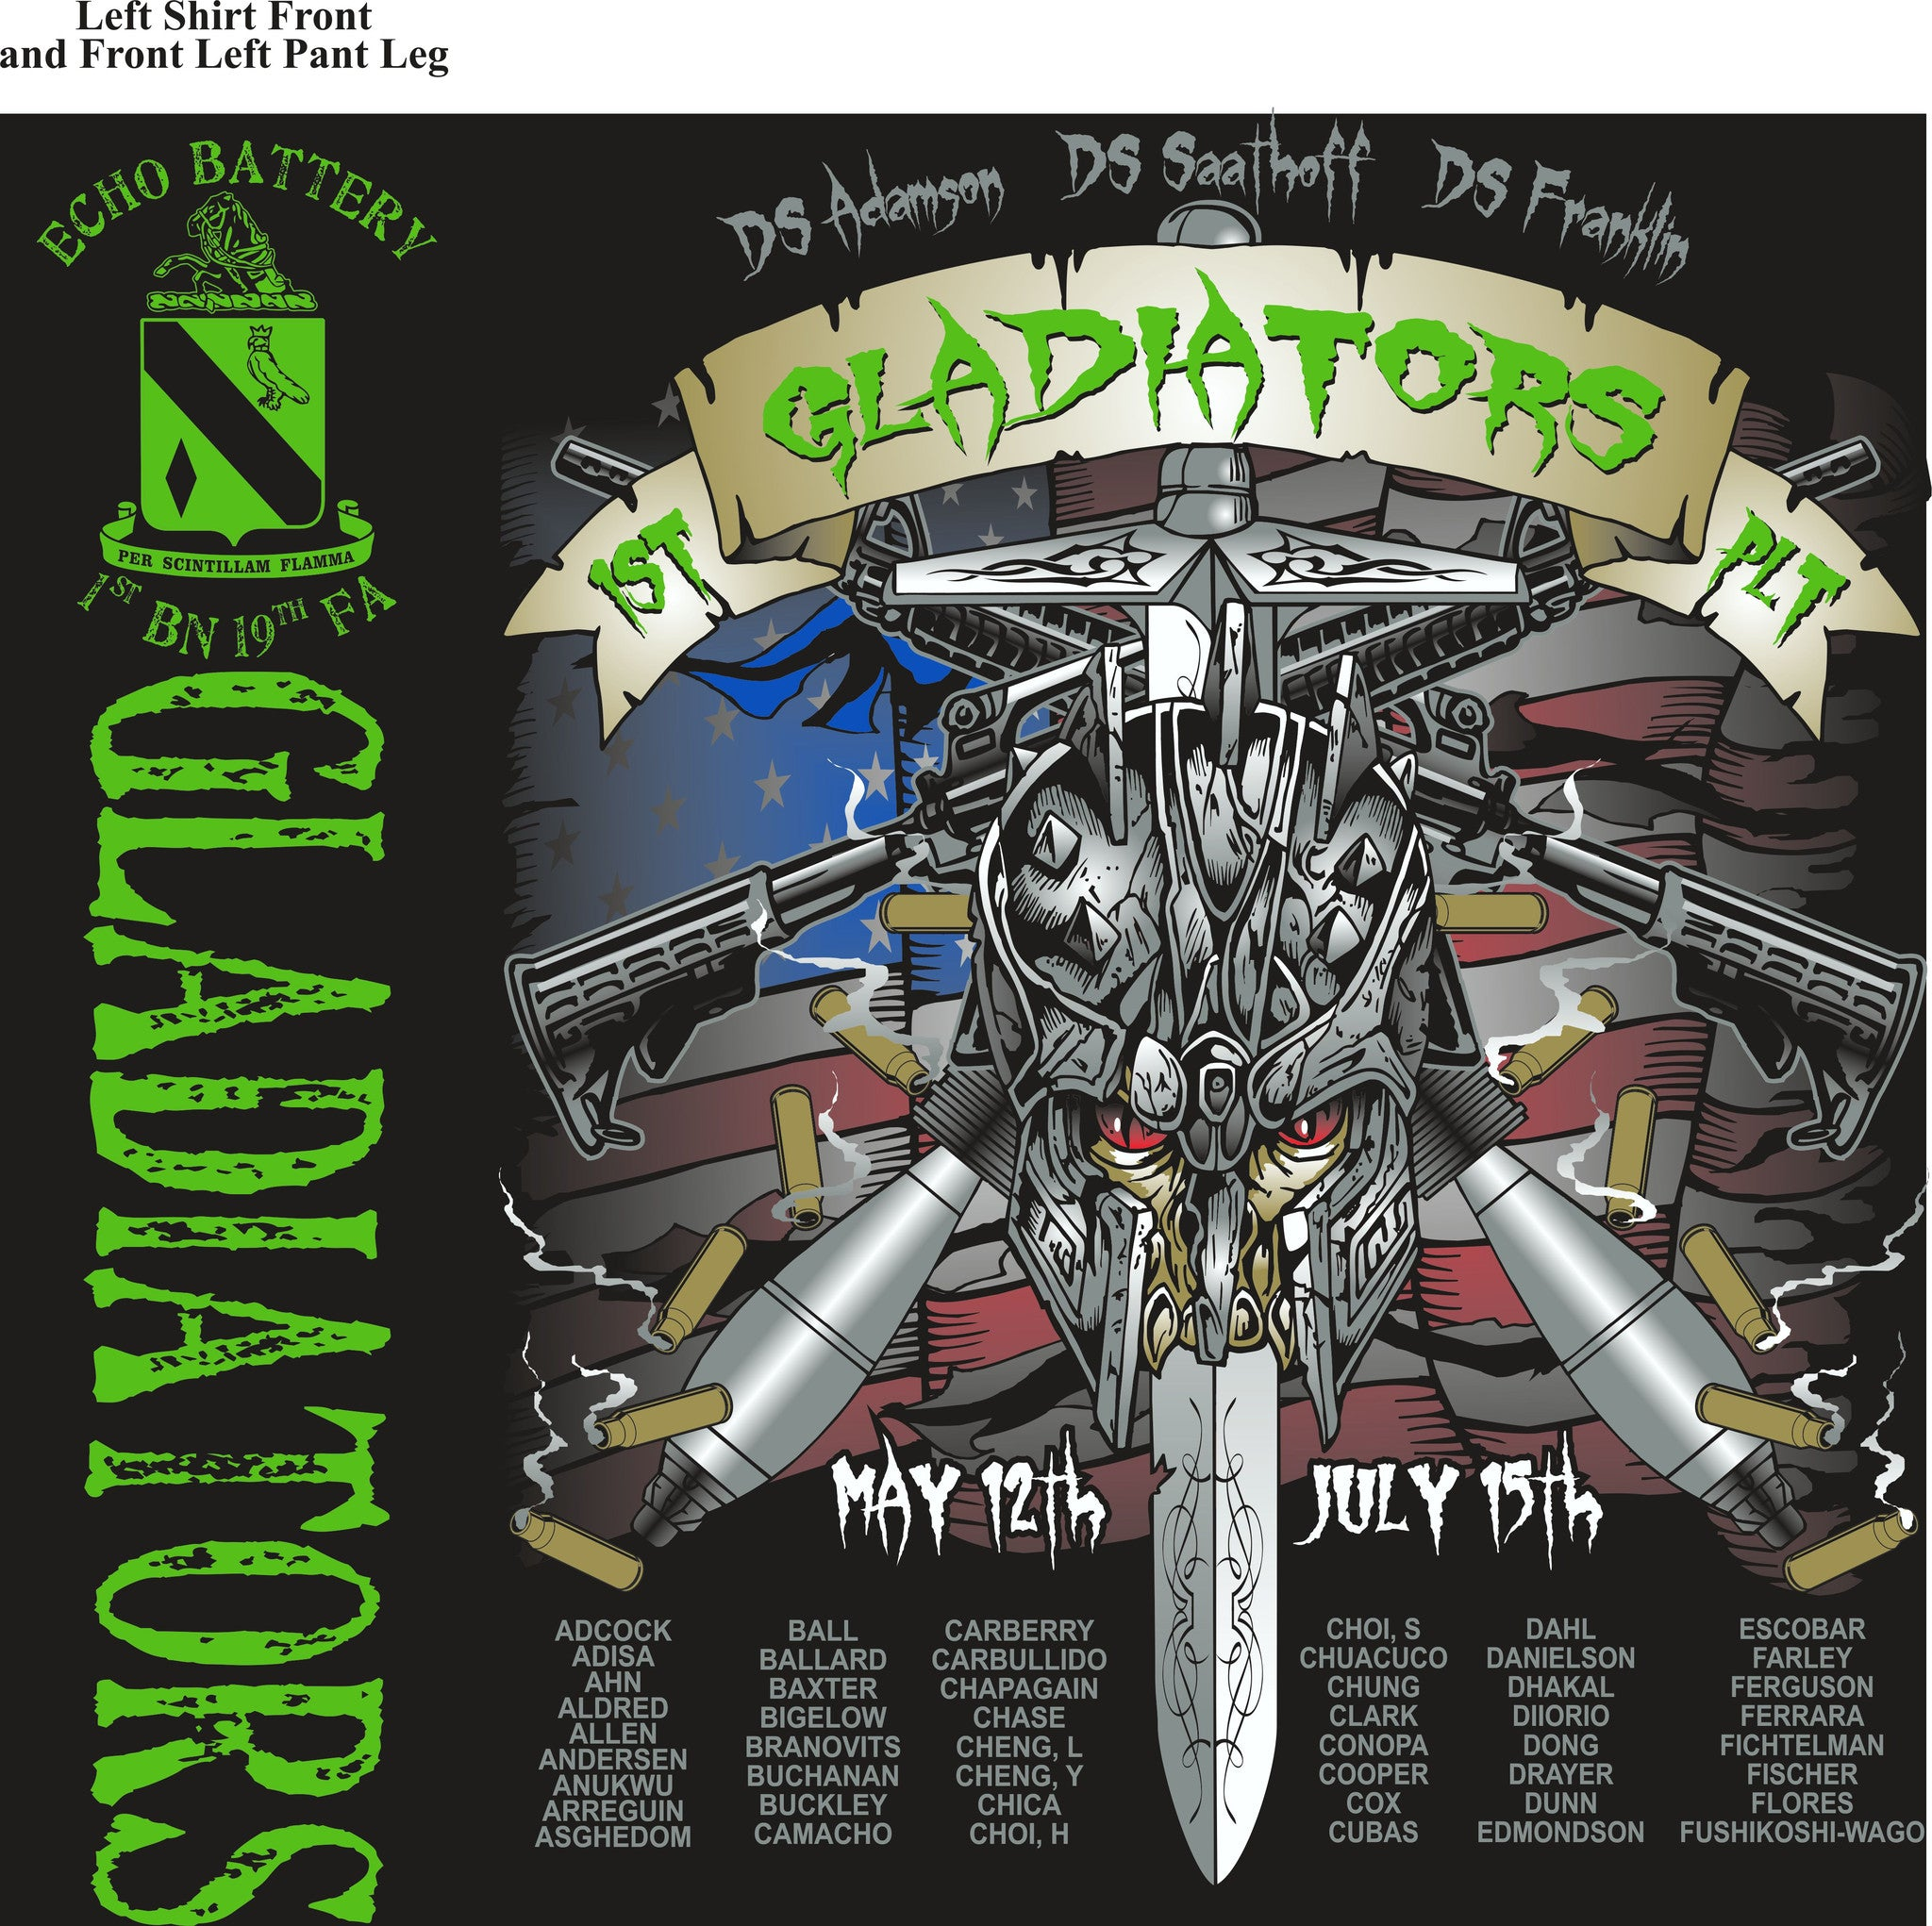 PLATOON SHIRTS (2nd generation print) ECHO 1st 19th GLADIATORS JULY 2016